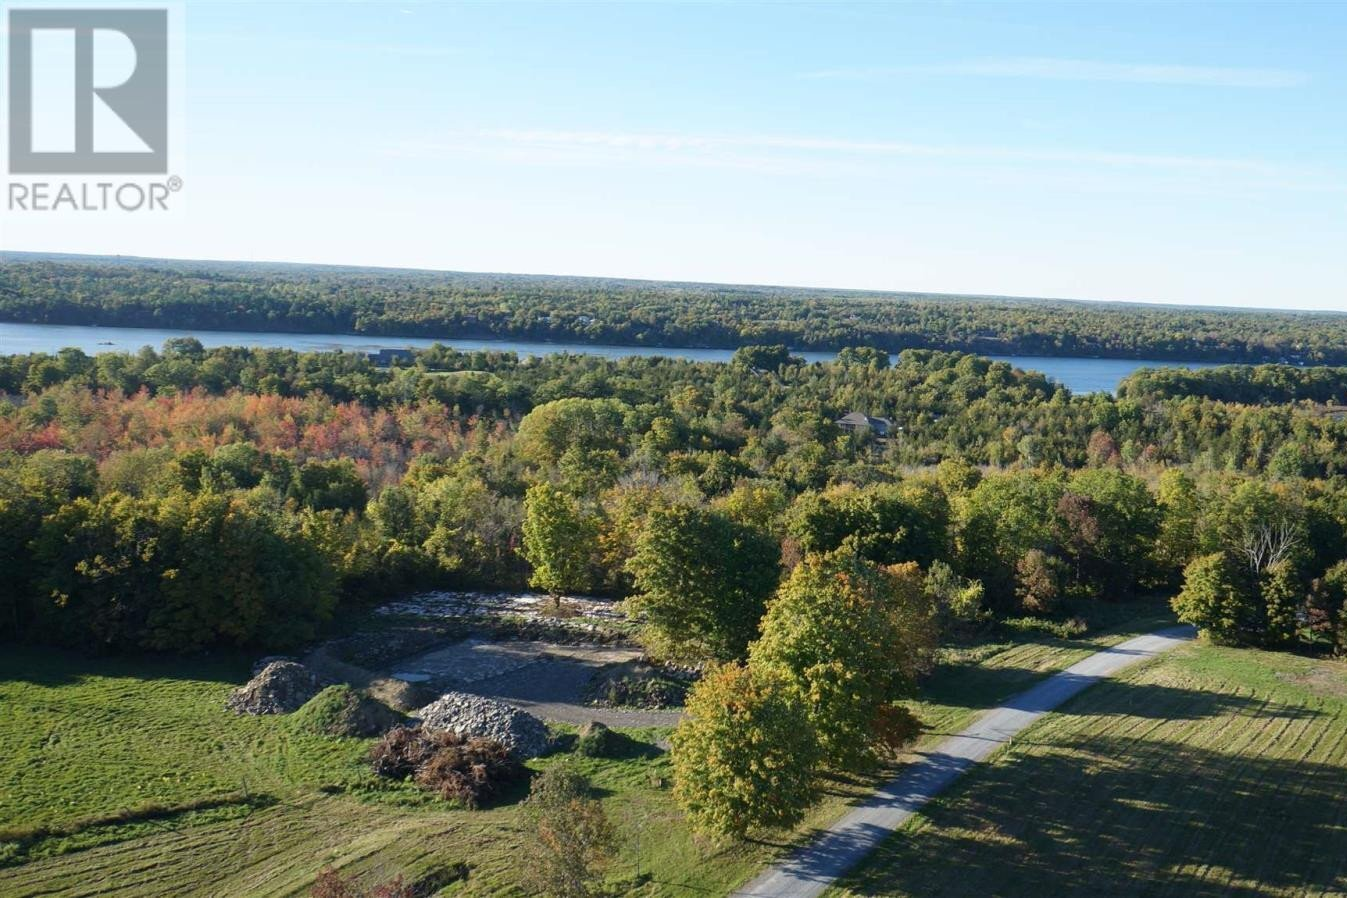 Residential property for sale at 20 Applewood Ln South Frontenac Ontario - MLS: K20004578a